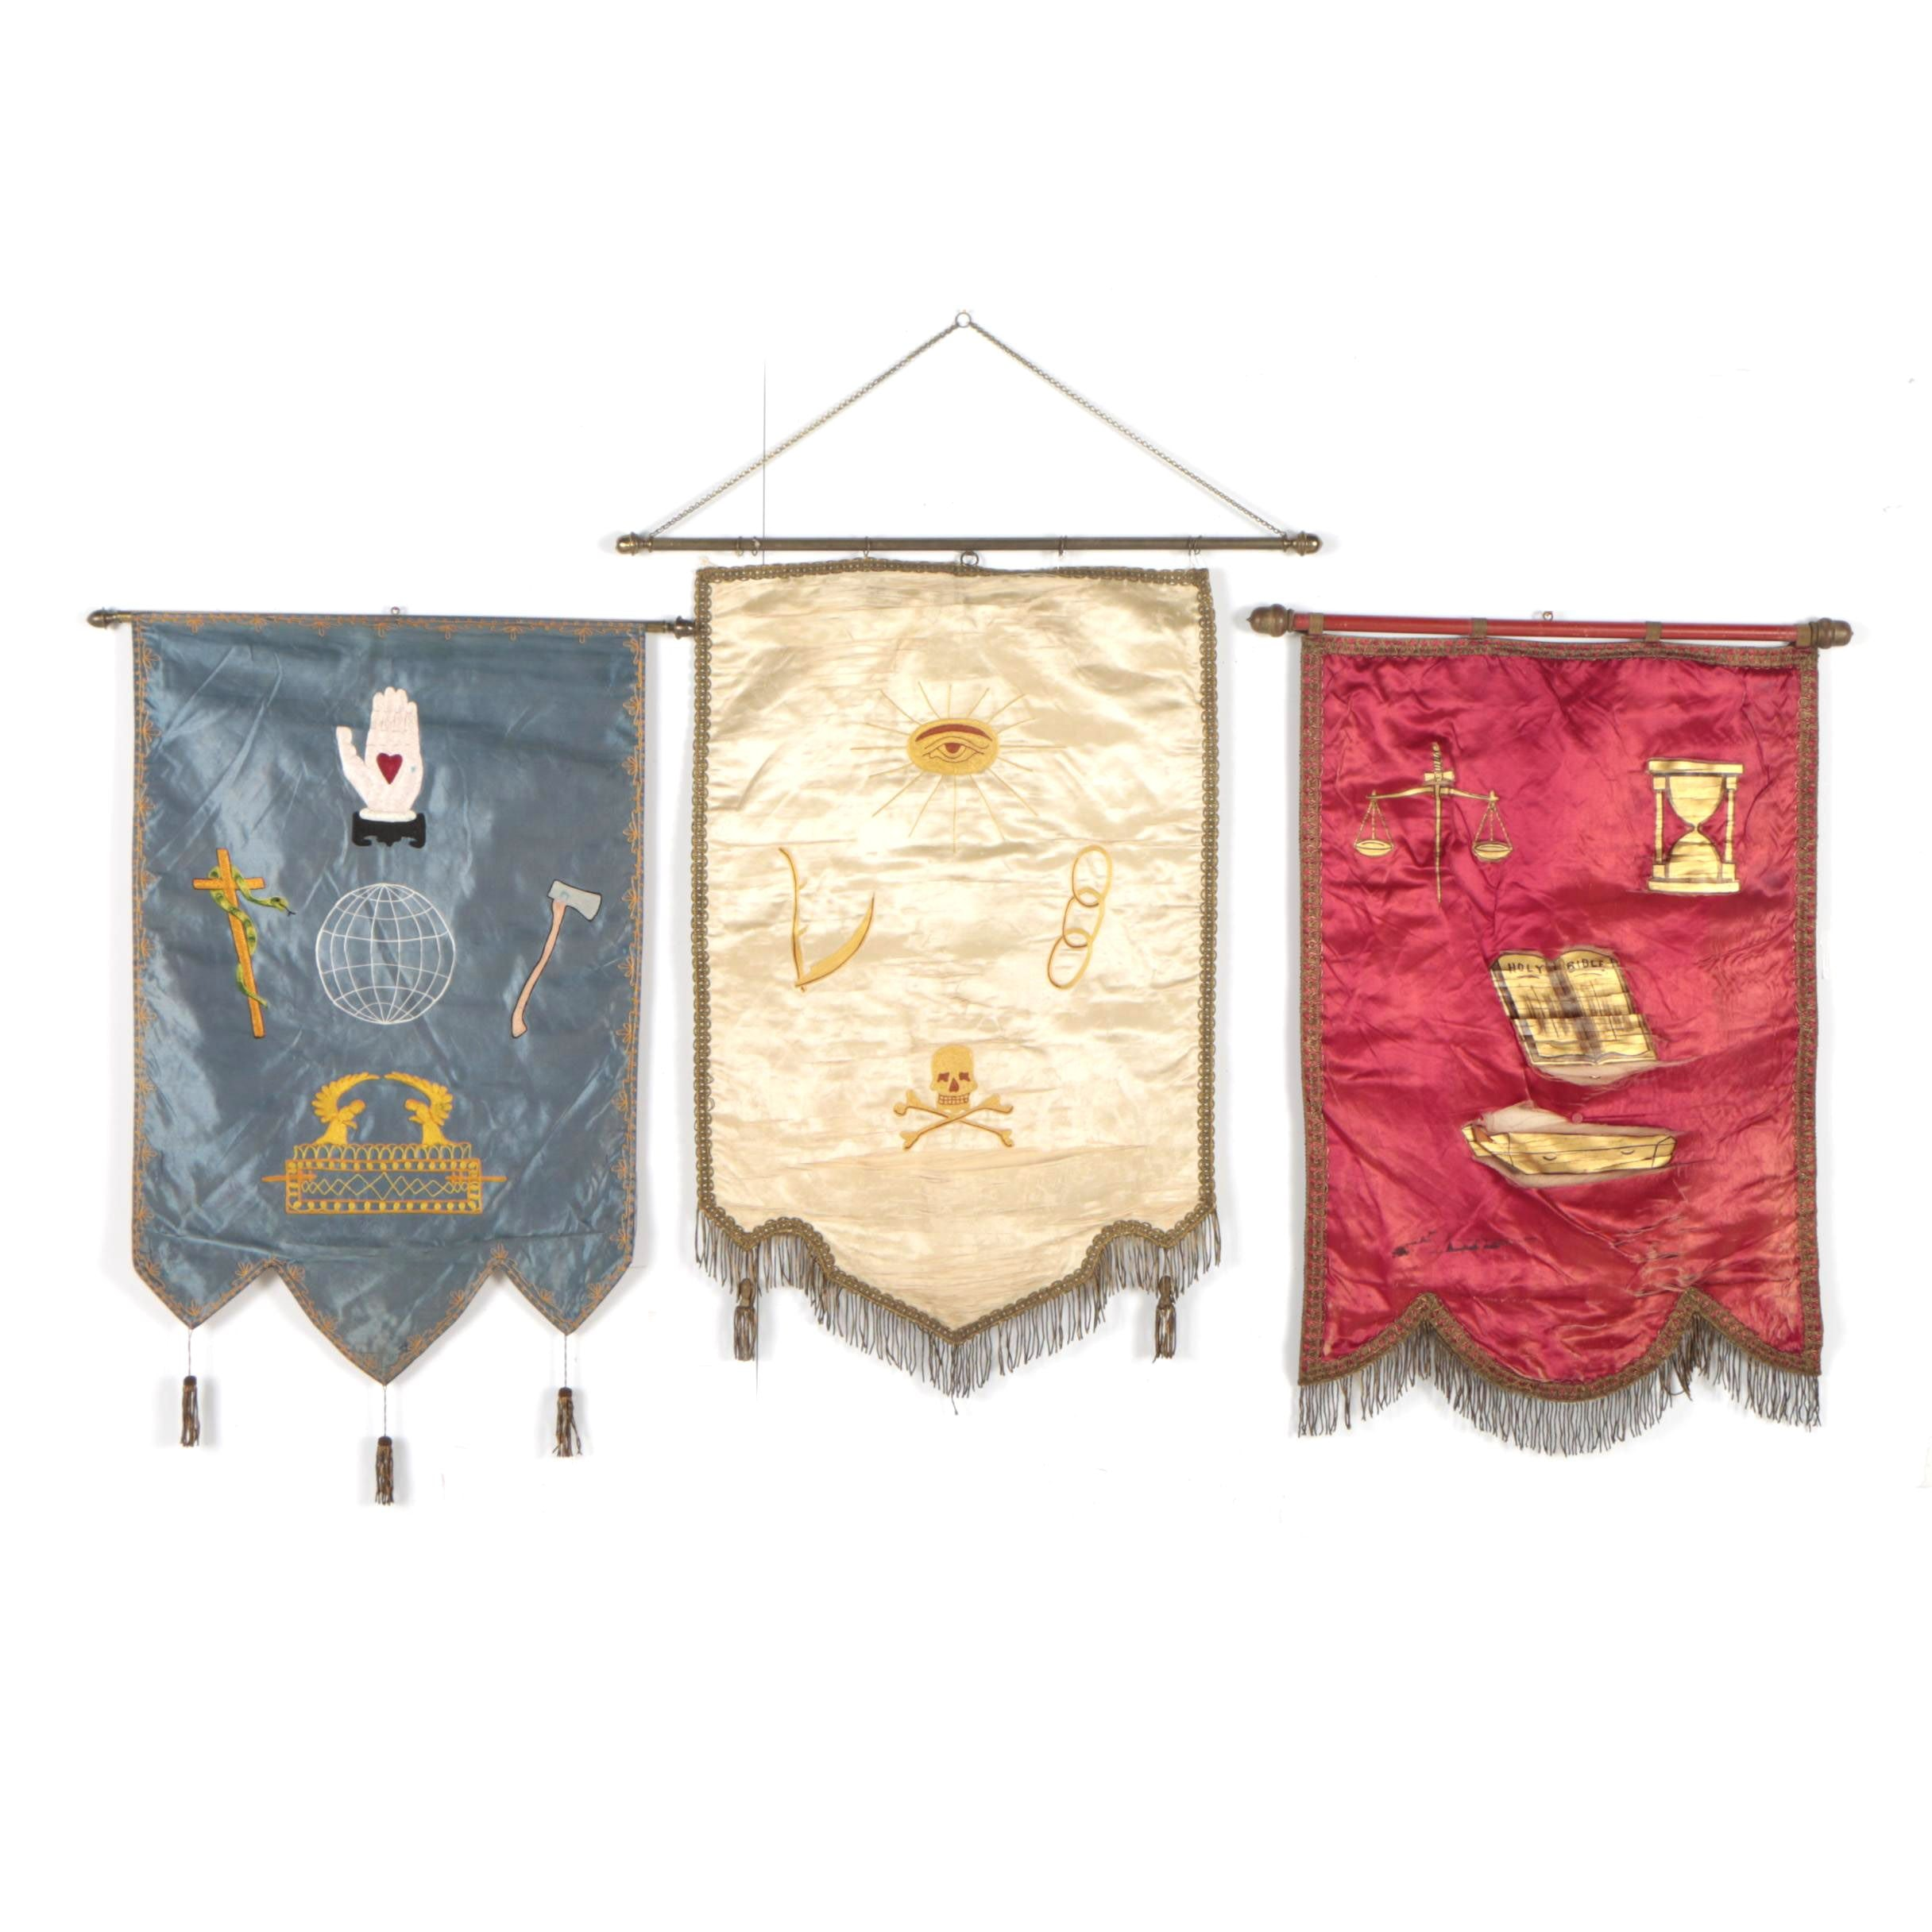 Vintage Odd Fellows Hanging Silk Banners with Embroidered Designs